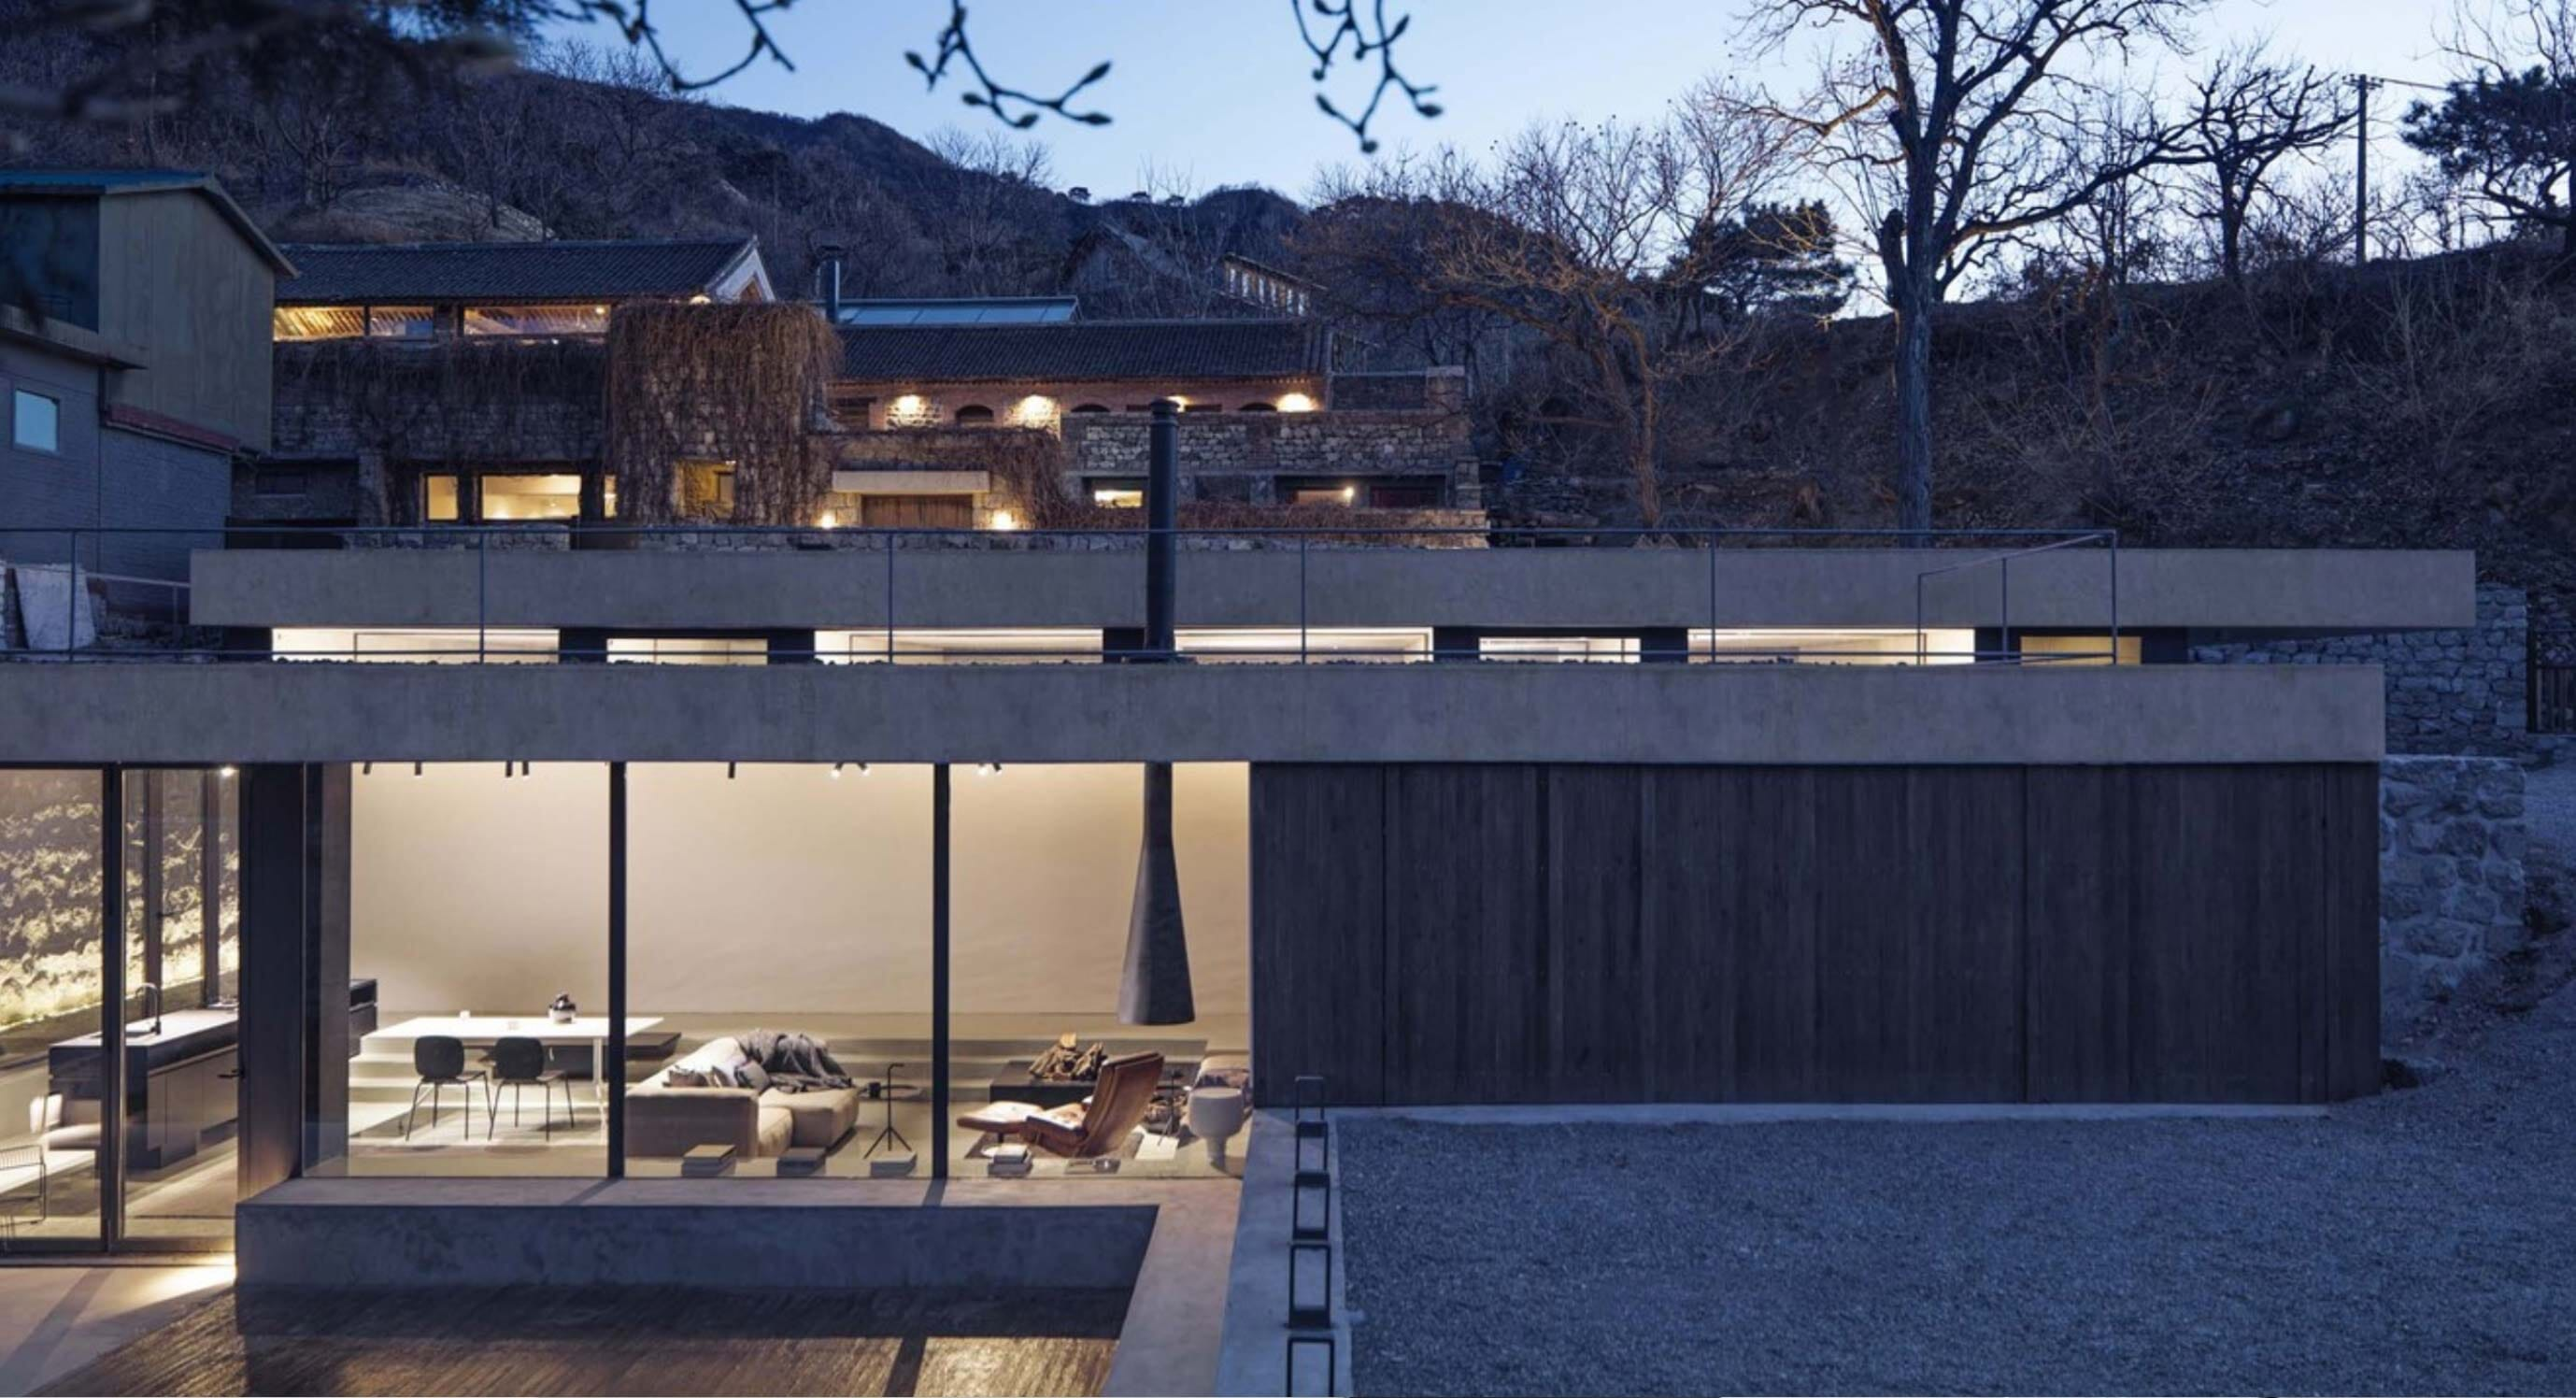 House On The Great Wall Copes With Extreme Architectural Competition